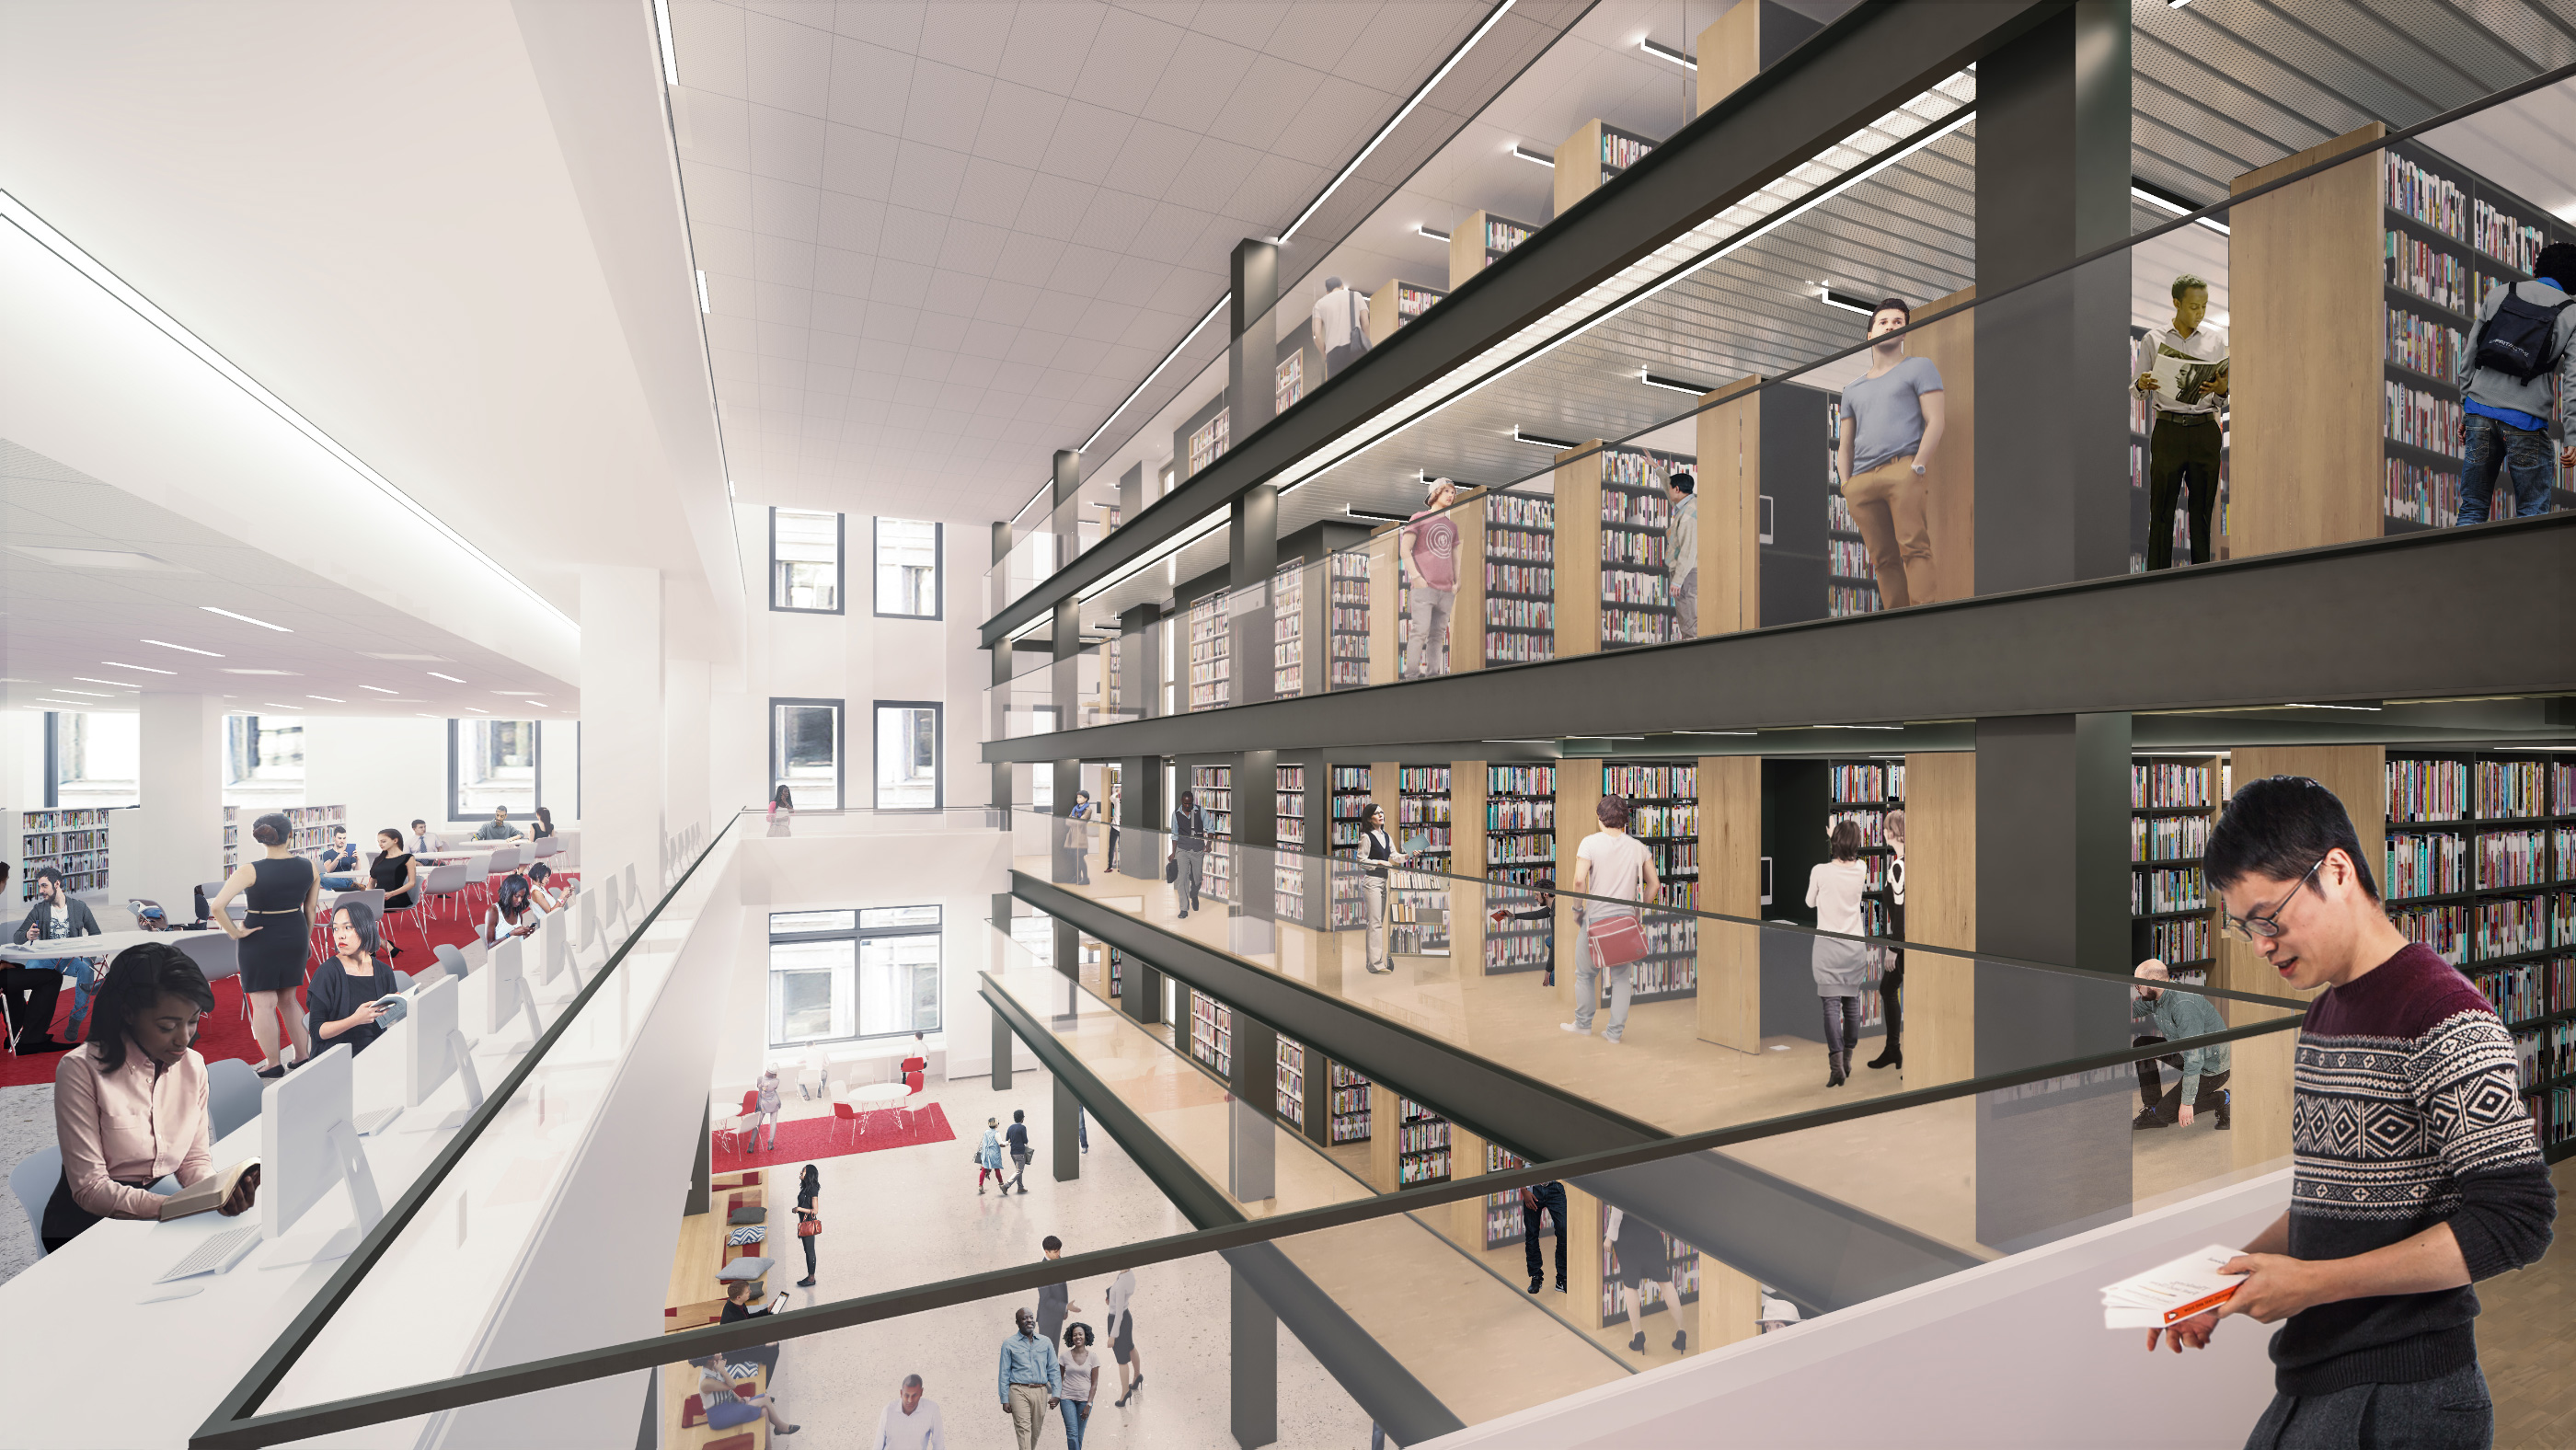 Rendering of a large atrium cutting across a library